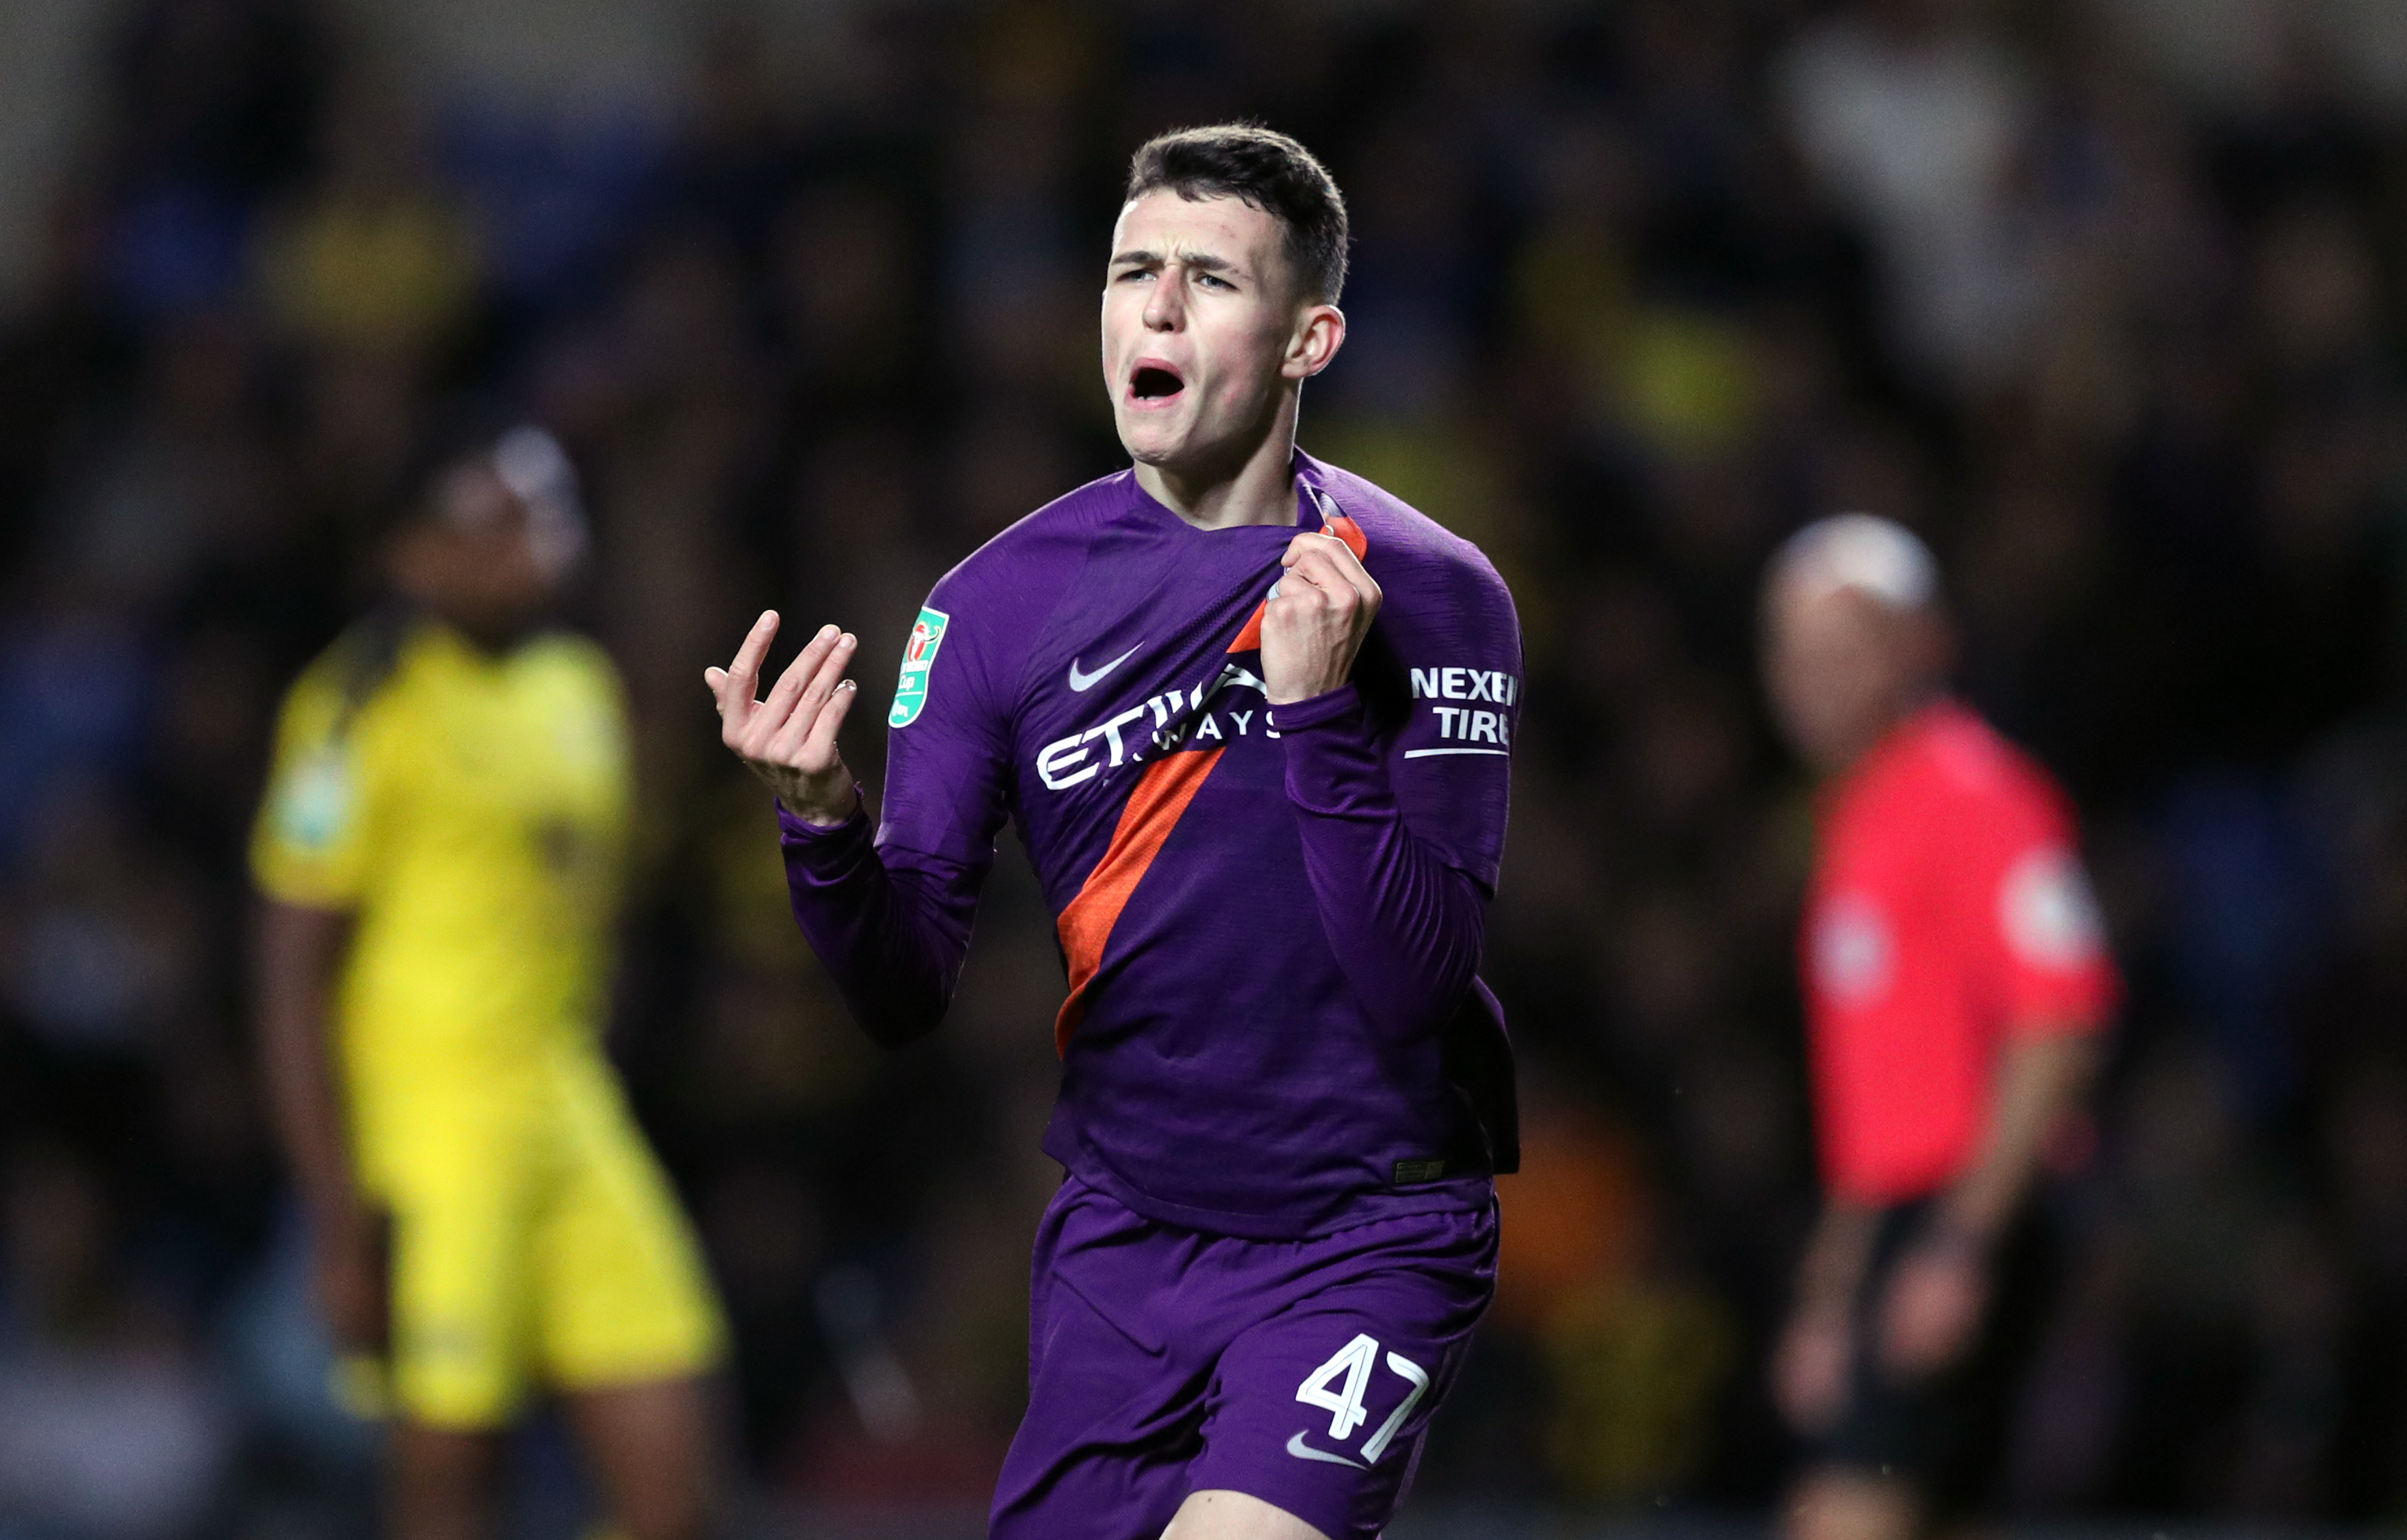 Foden celebrates scoring a goal for City. Image: PA